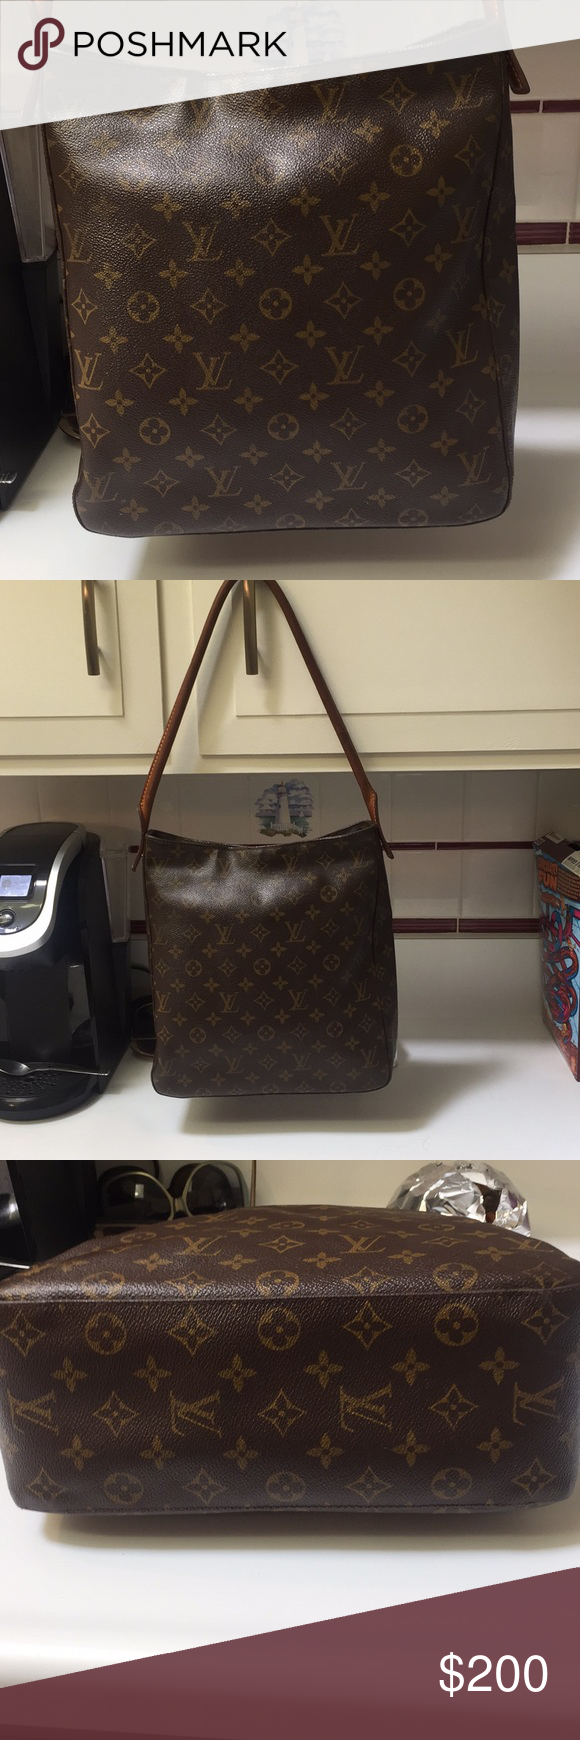 LAST PRICE Authentic Louis Vuitton Shoulder Bag This bag is an older Louis  Vuitton. The inside of the bag has peeling and the pocket inside is torn.  You ... d6a0f81589ad8